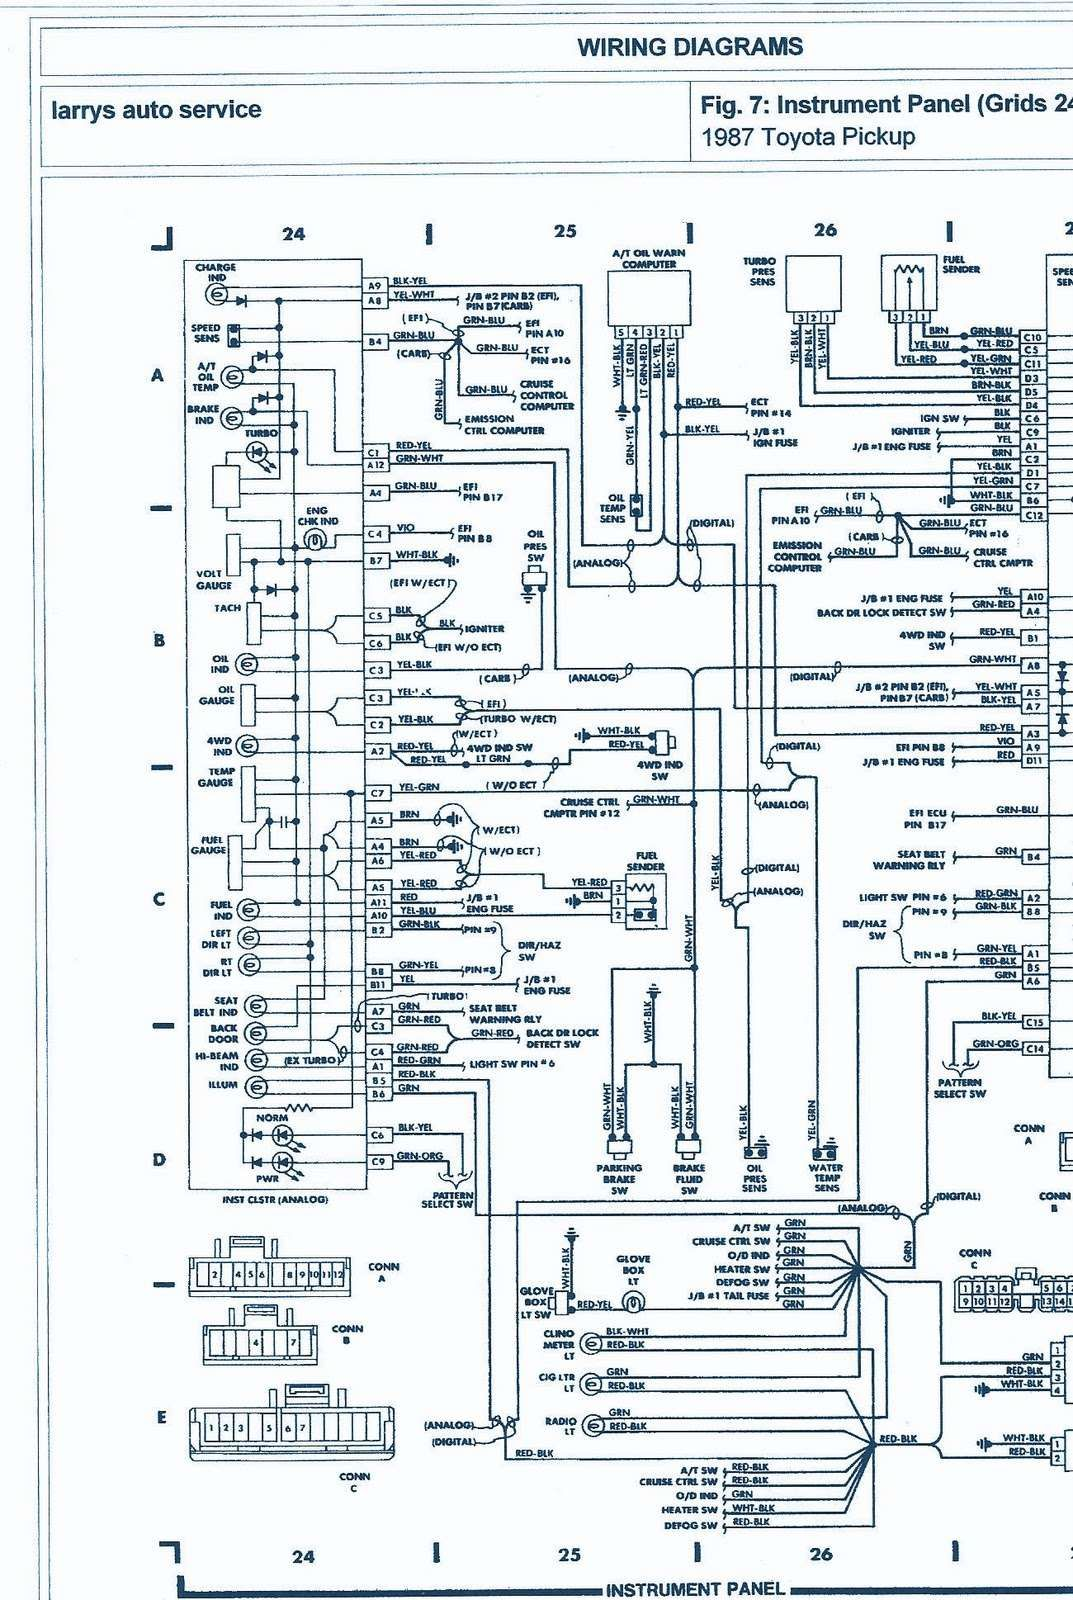 Wiring Diagram Electrical Electrical Wiring Diagram Toyota Diagram